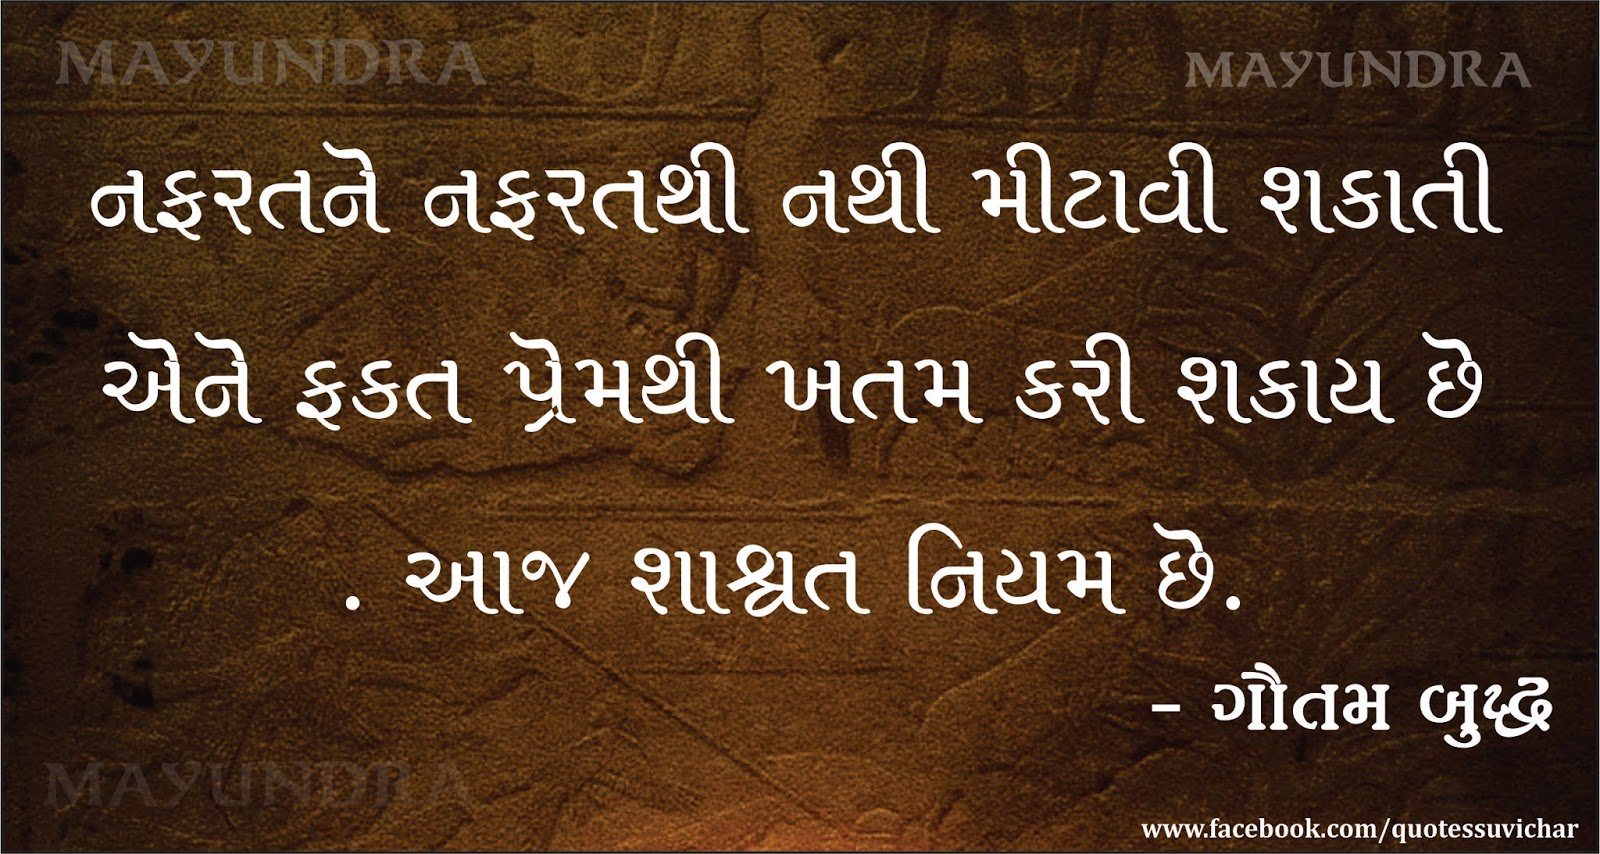 Buddhist Quotes On Love Gujarati Quotes  Love  Gautam Buddha  Quotes India  Quotes